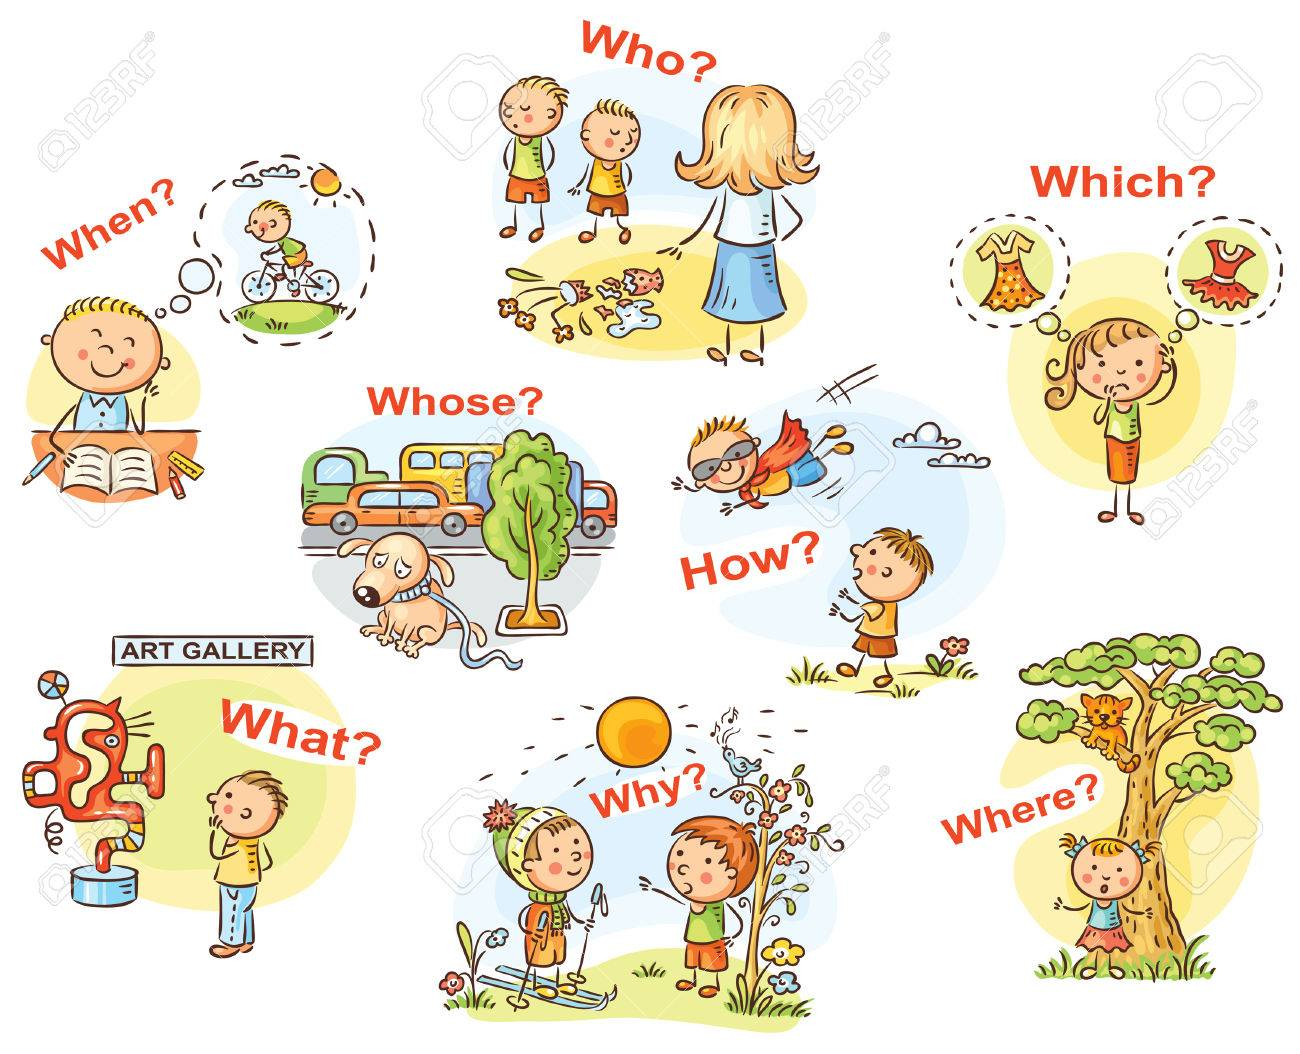 question words in cartoon pictures visual aid for language learning